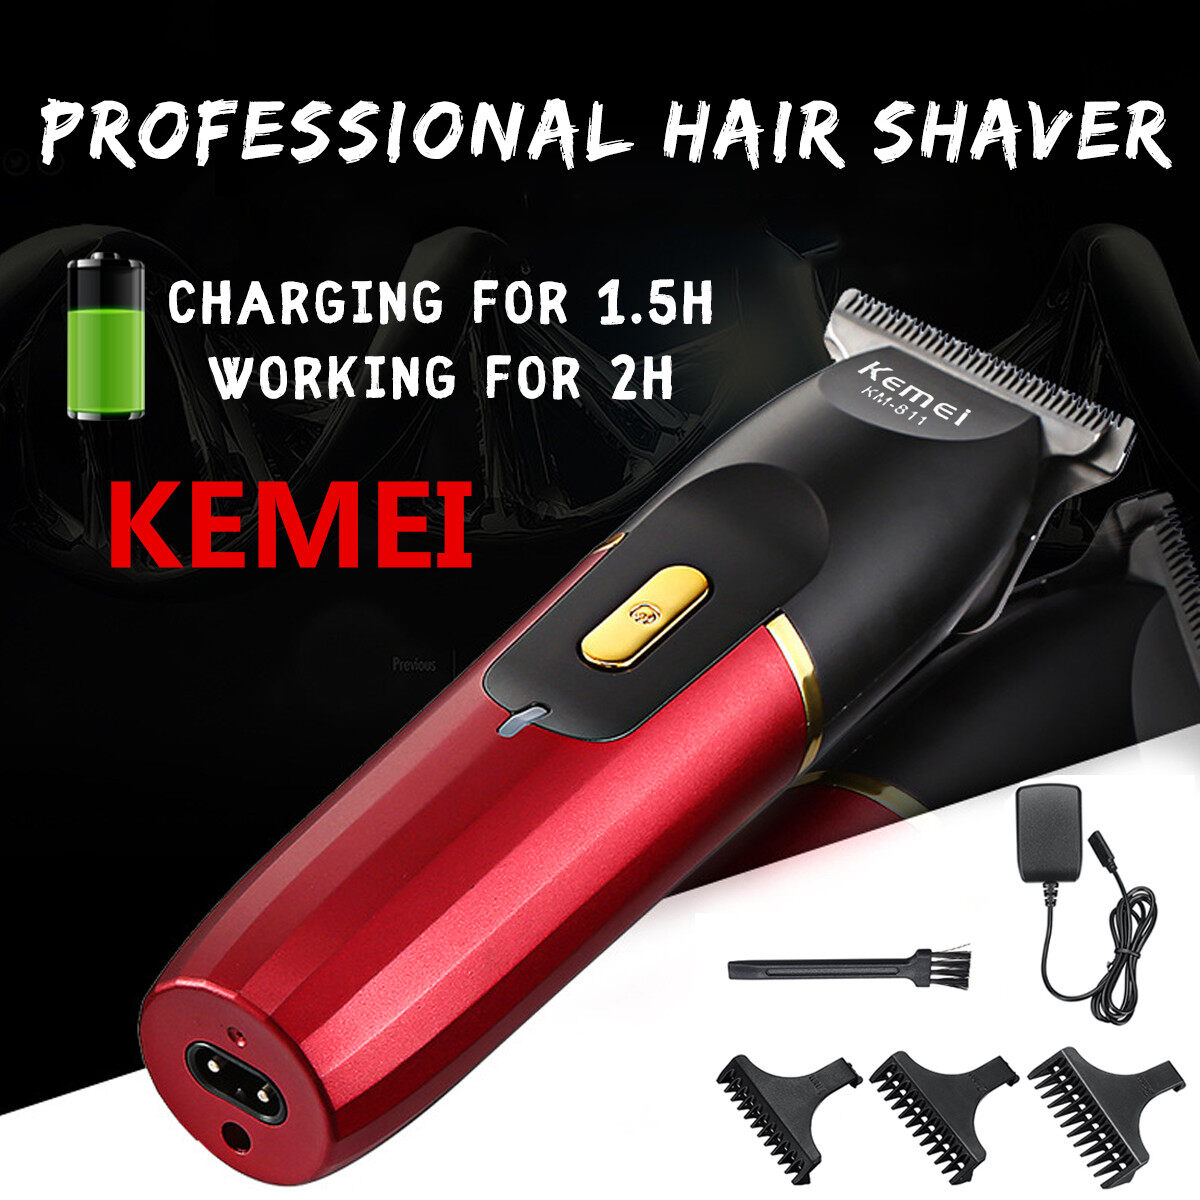 Kemei Electric Hair Trimmer Clipper Rechargeable Body Beard Shaver Remover Razor